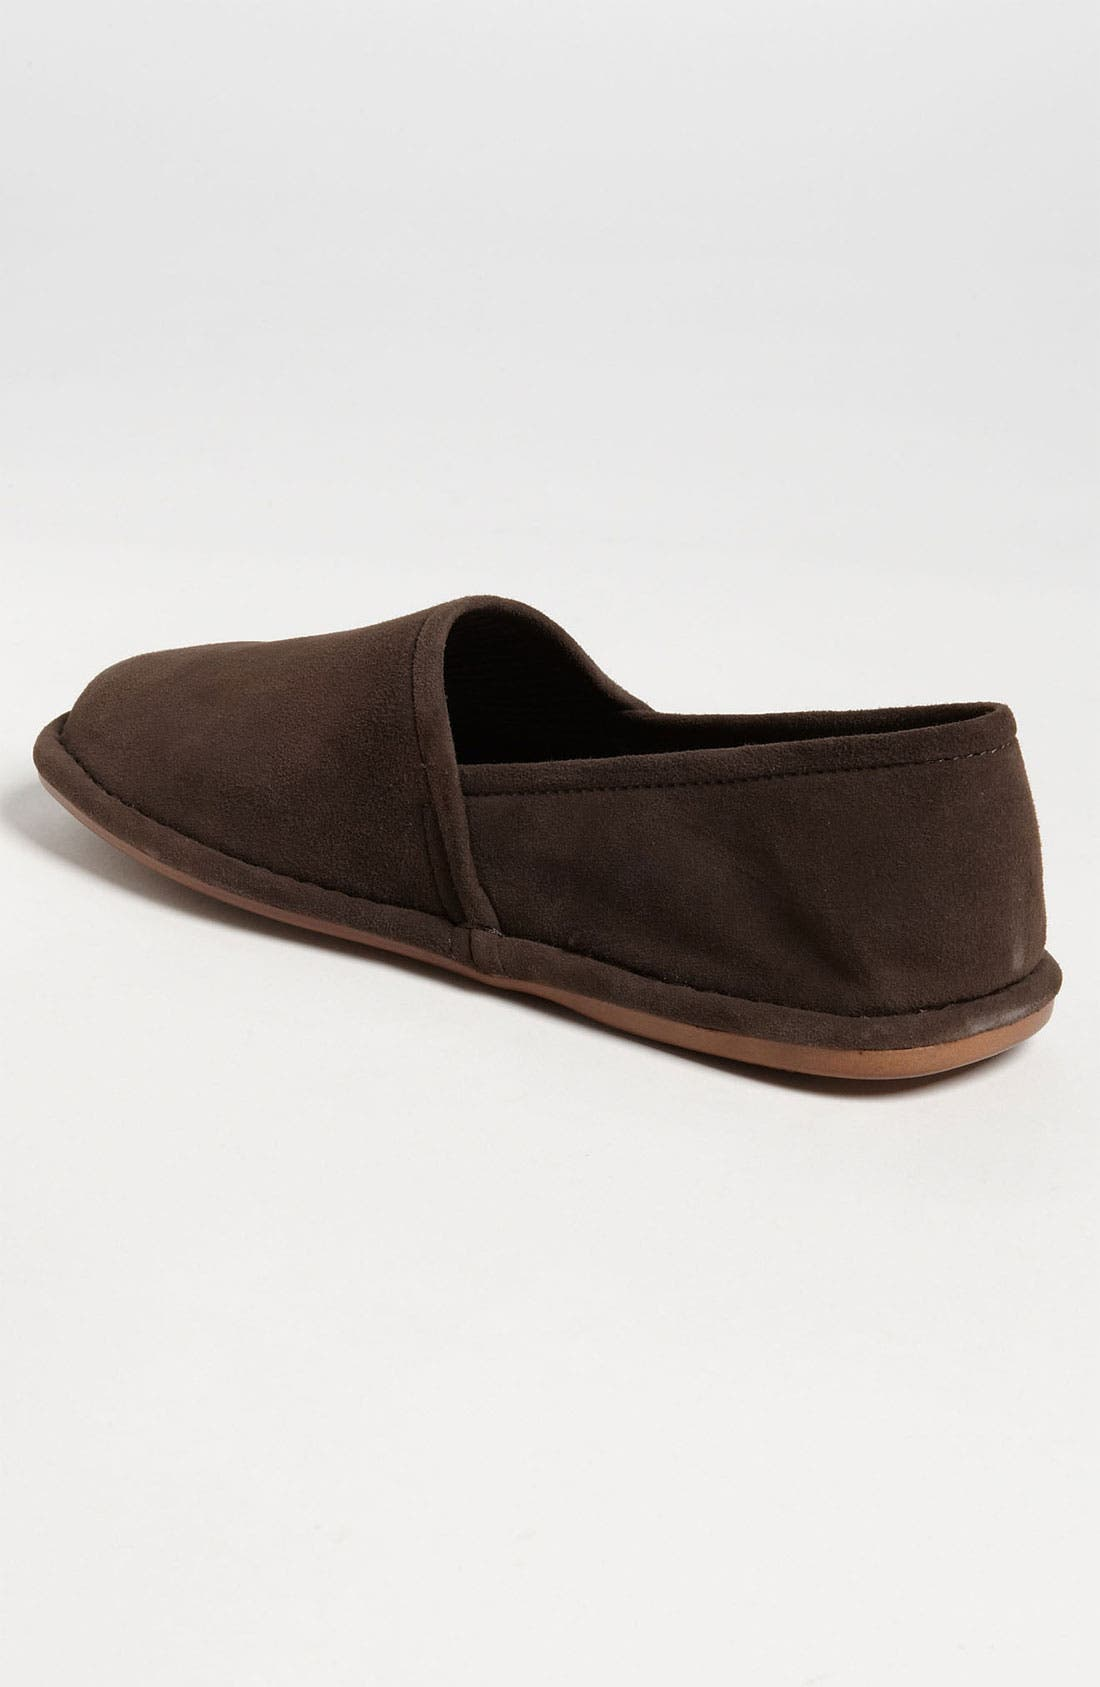 Alternate Image 3  - L.B. Evans 'Lars' Slipper (Online Only)